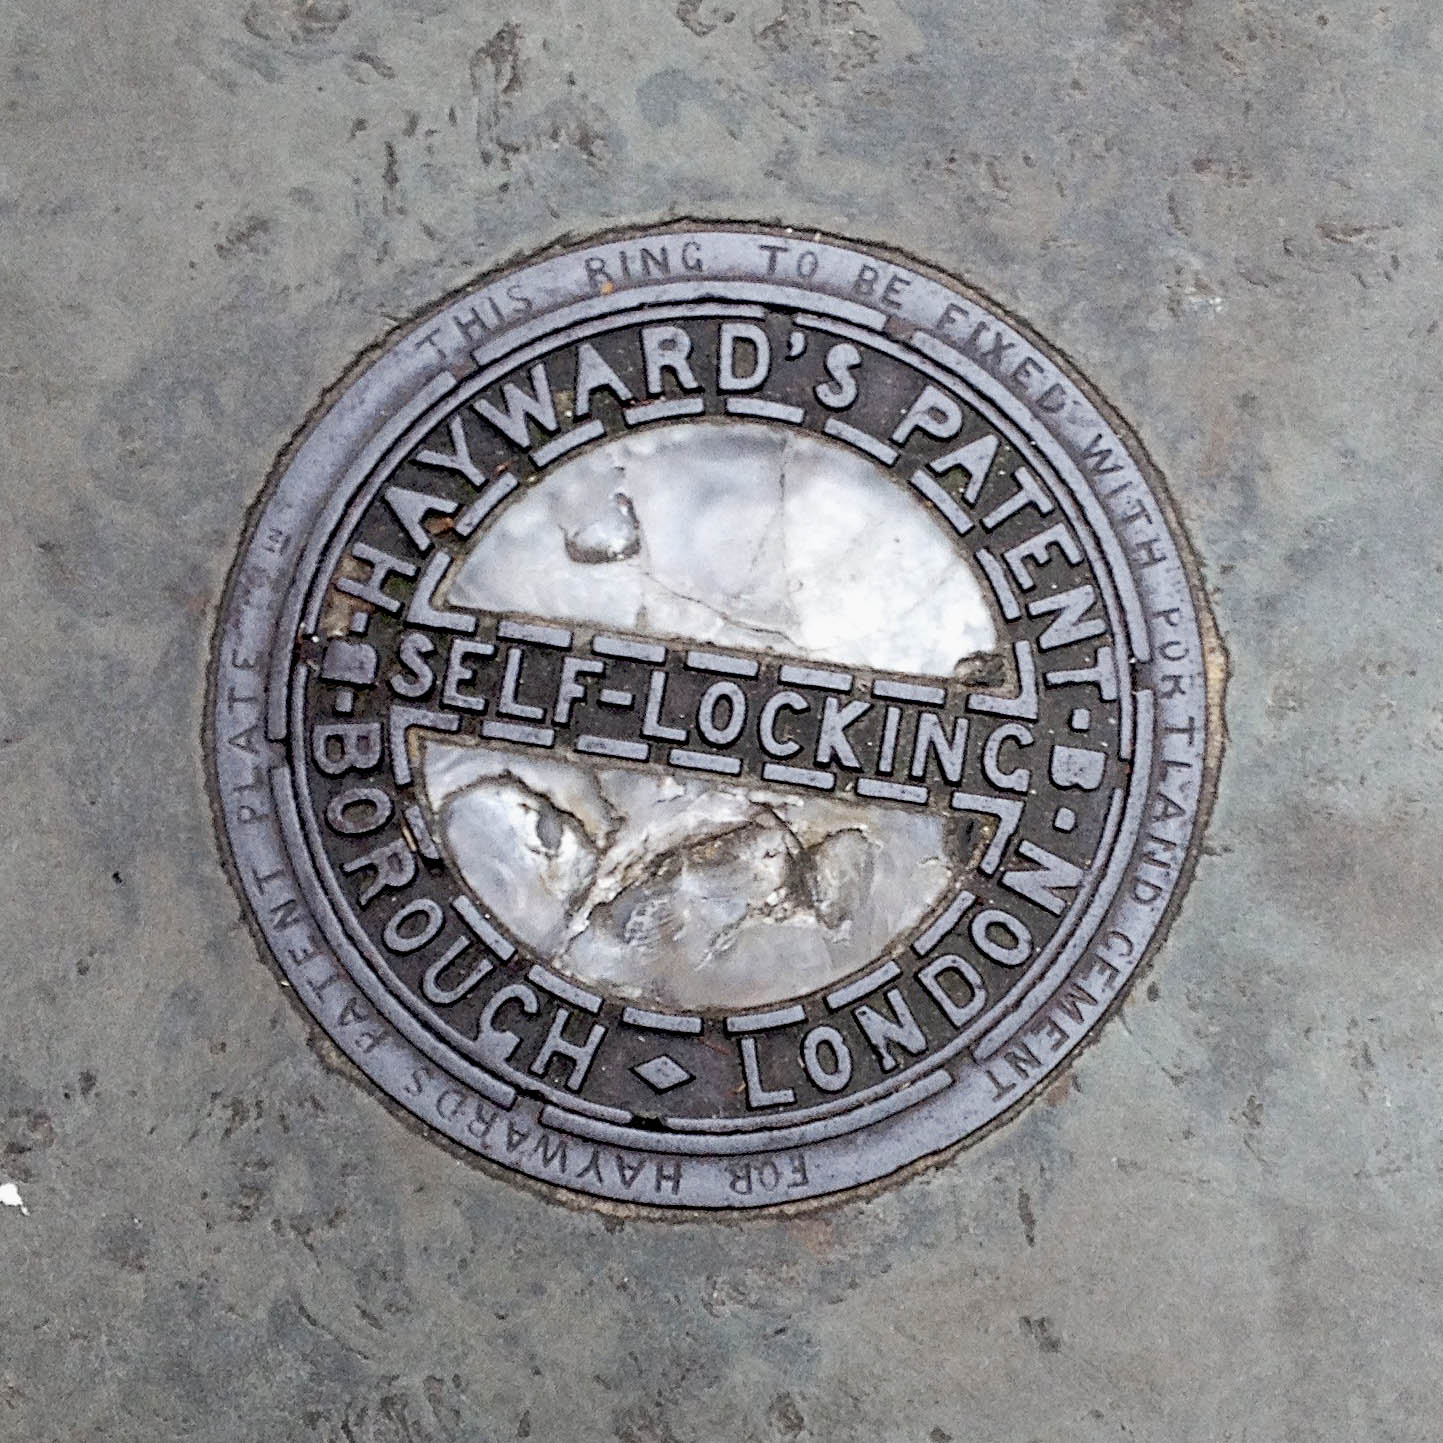 Manhole Cover, London - Cast iron surround inscribed with Hayward's Patent Borough London - Glass centre, divided by metal inscribed with Self locking